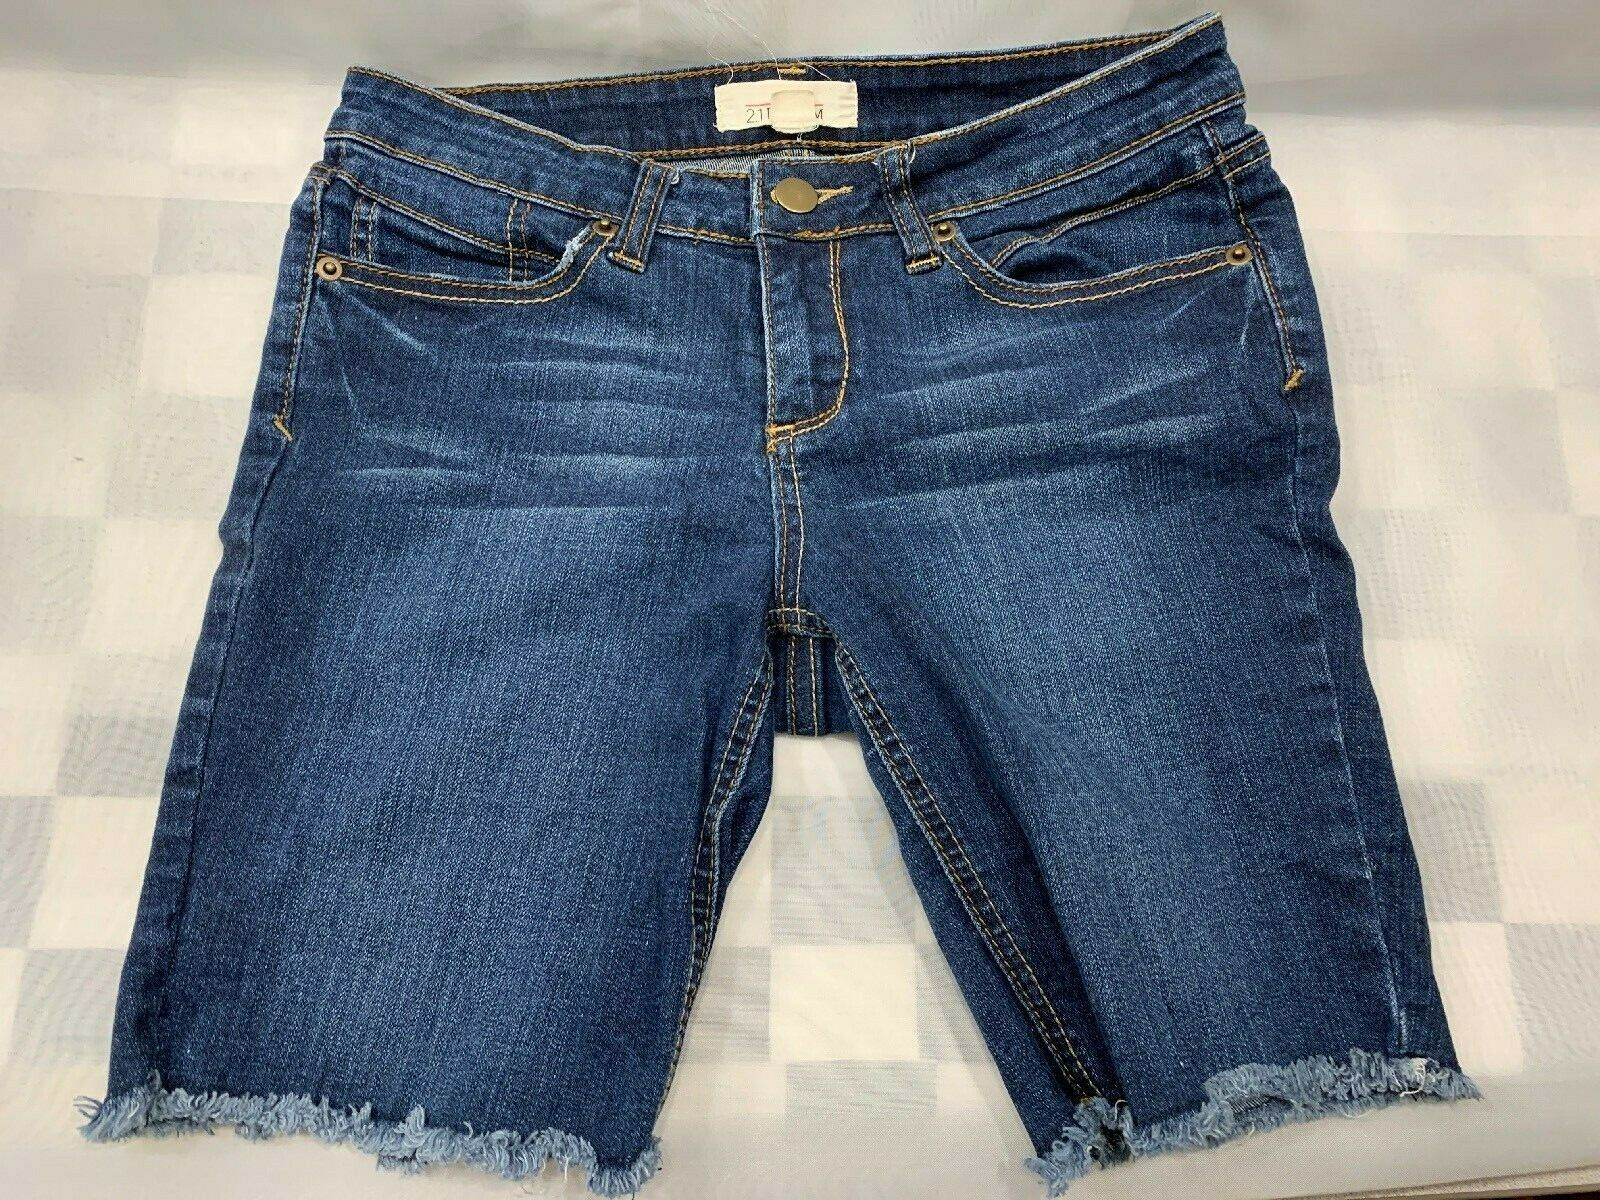 Primary image for 2.1 Denim Forever 21 Denim Cutoff Frayed Blue Jean Shorts Size 27